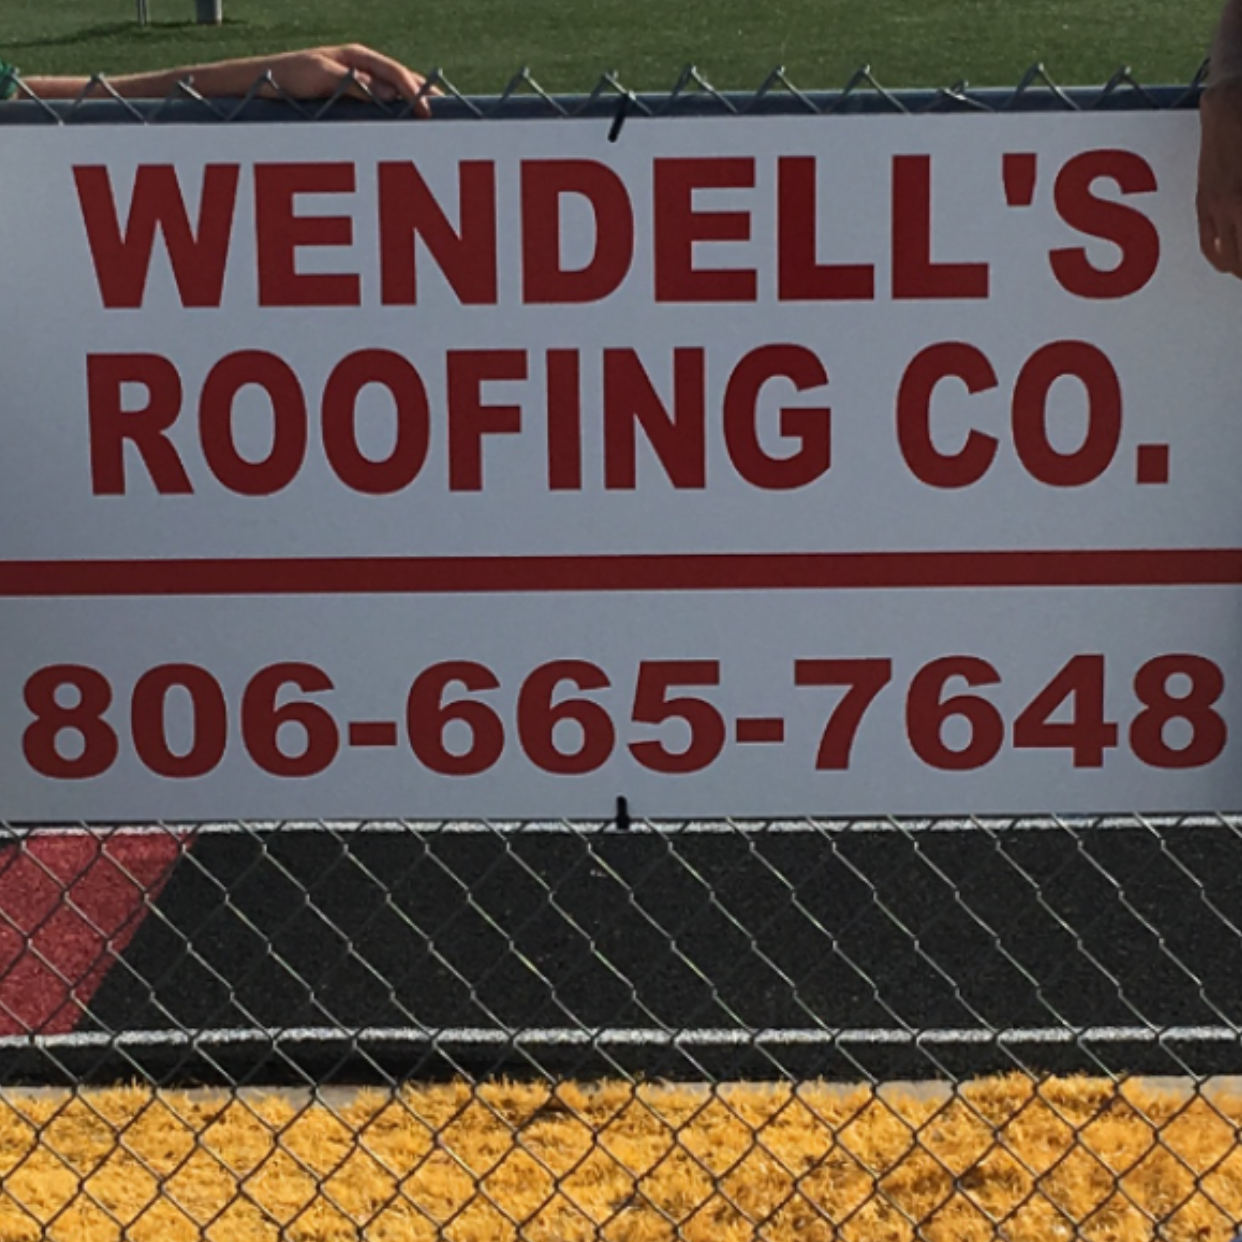 Wendell's Roofing Company image 0